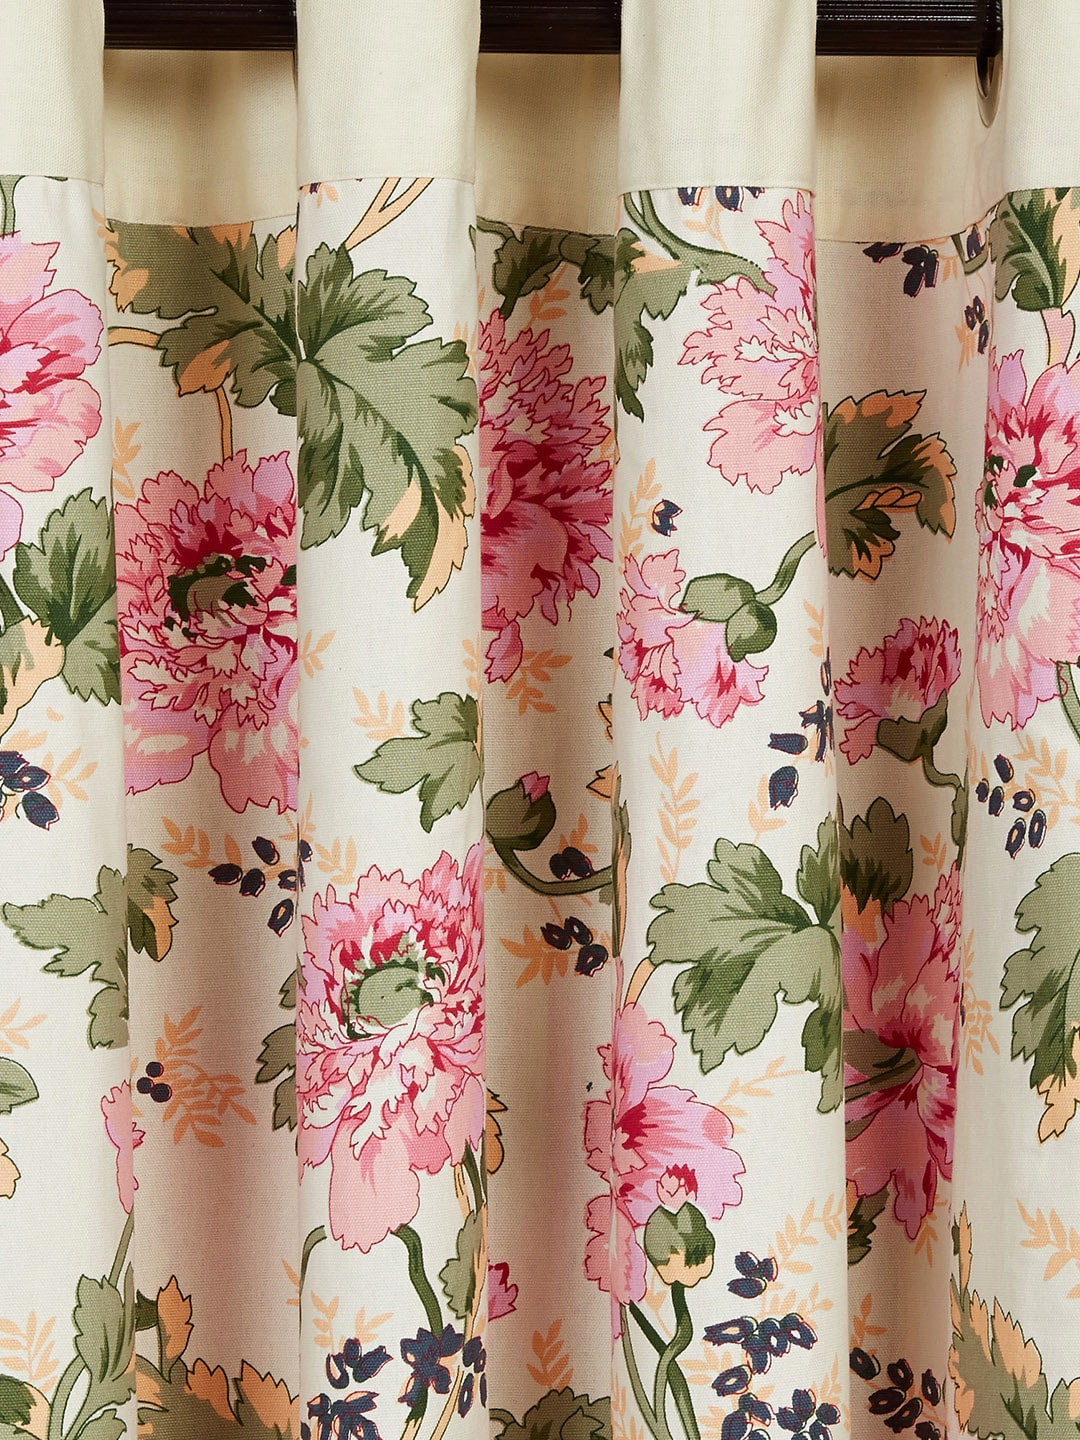 Buy best luxury curtains in india curtains india - Buy Best Luxury Curtains In India Curtains India 14